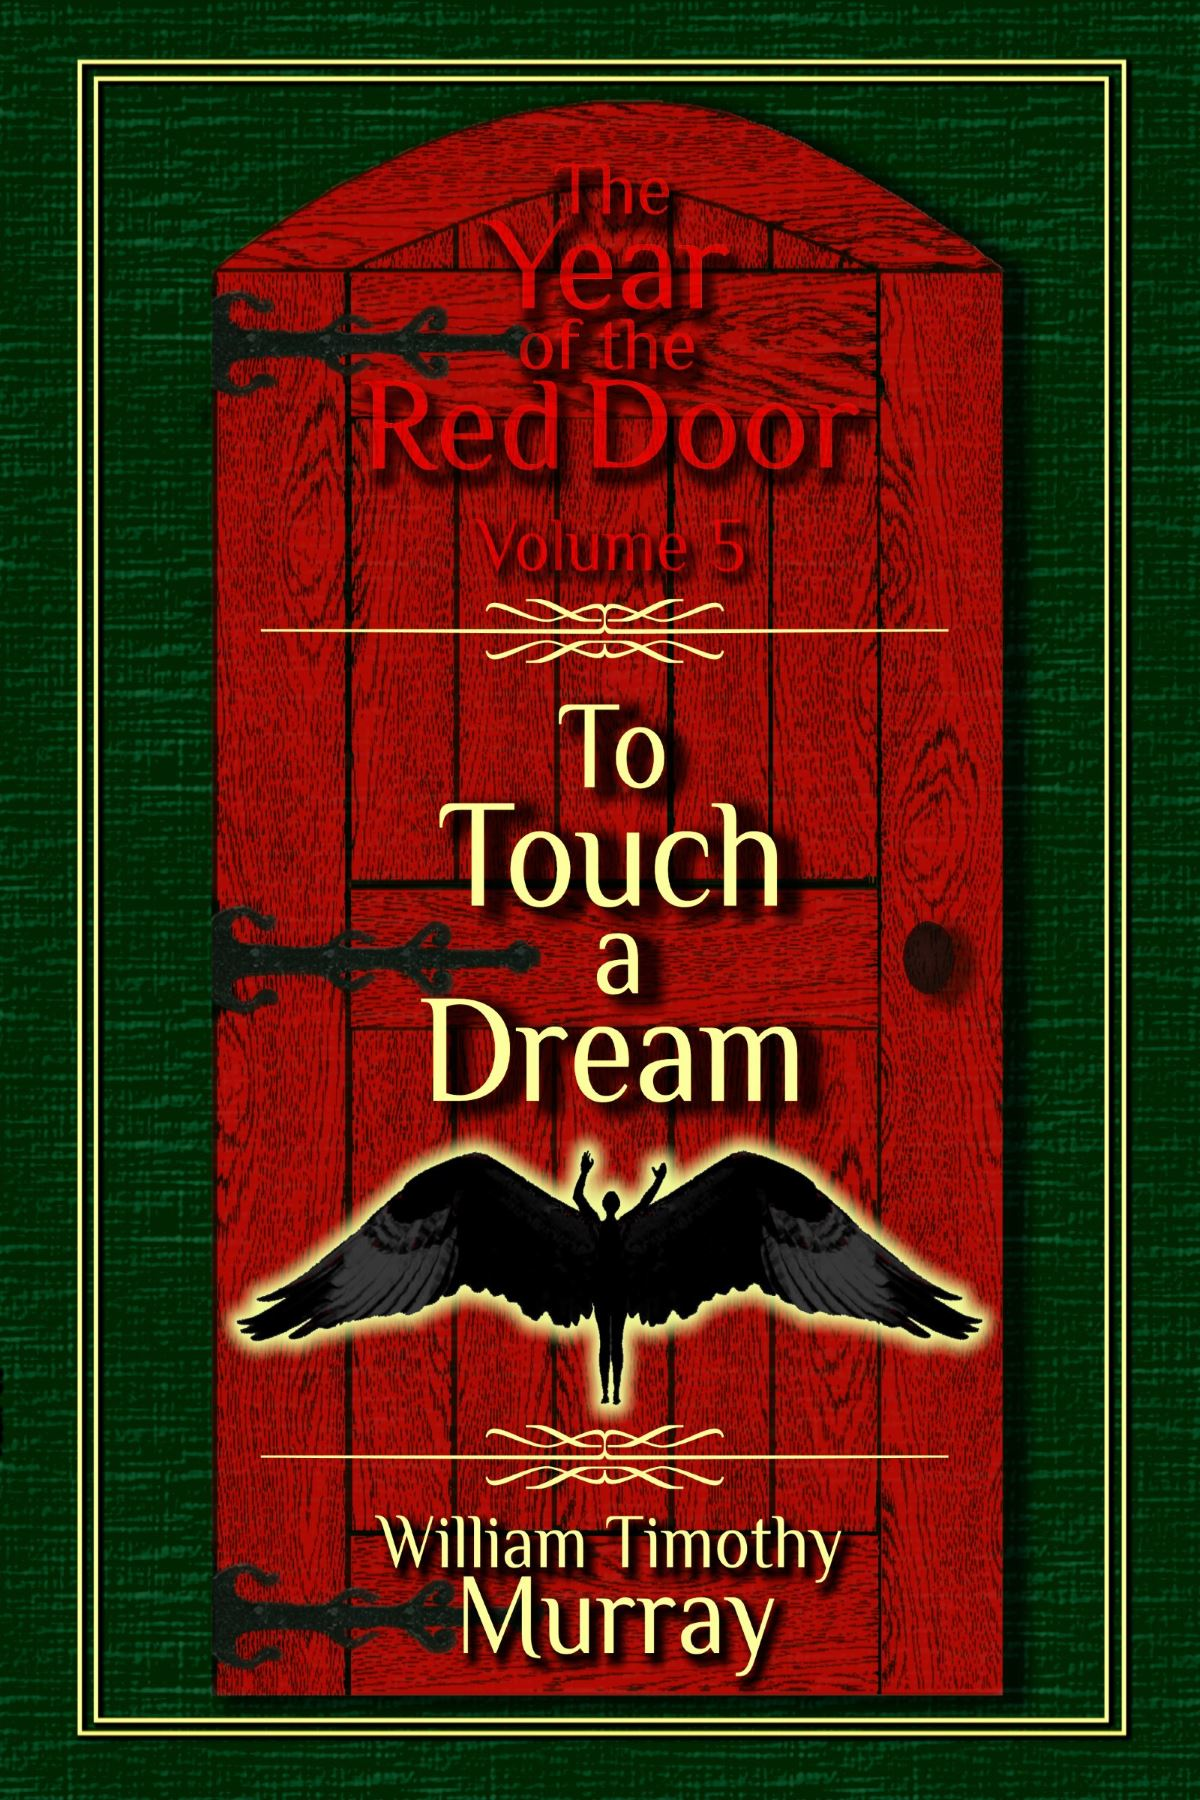 To Touch a Dream. Volume 5 of The Year of the Red Door